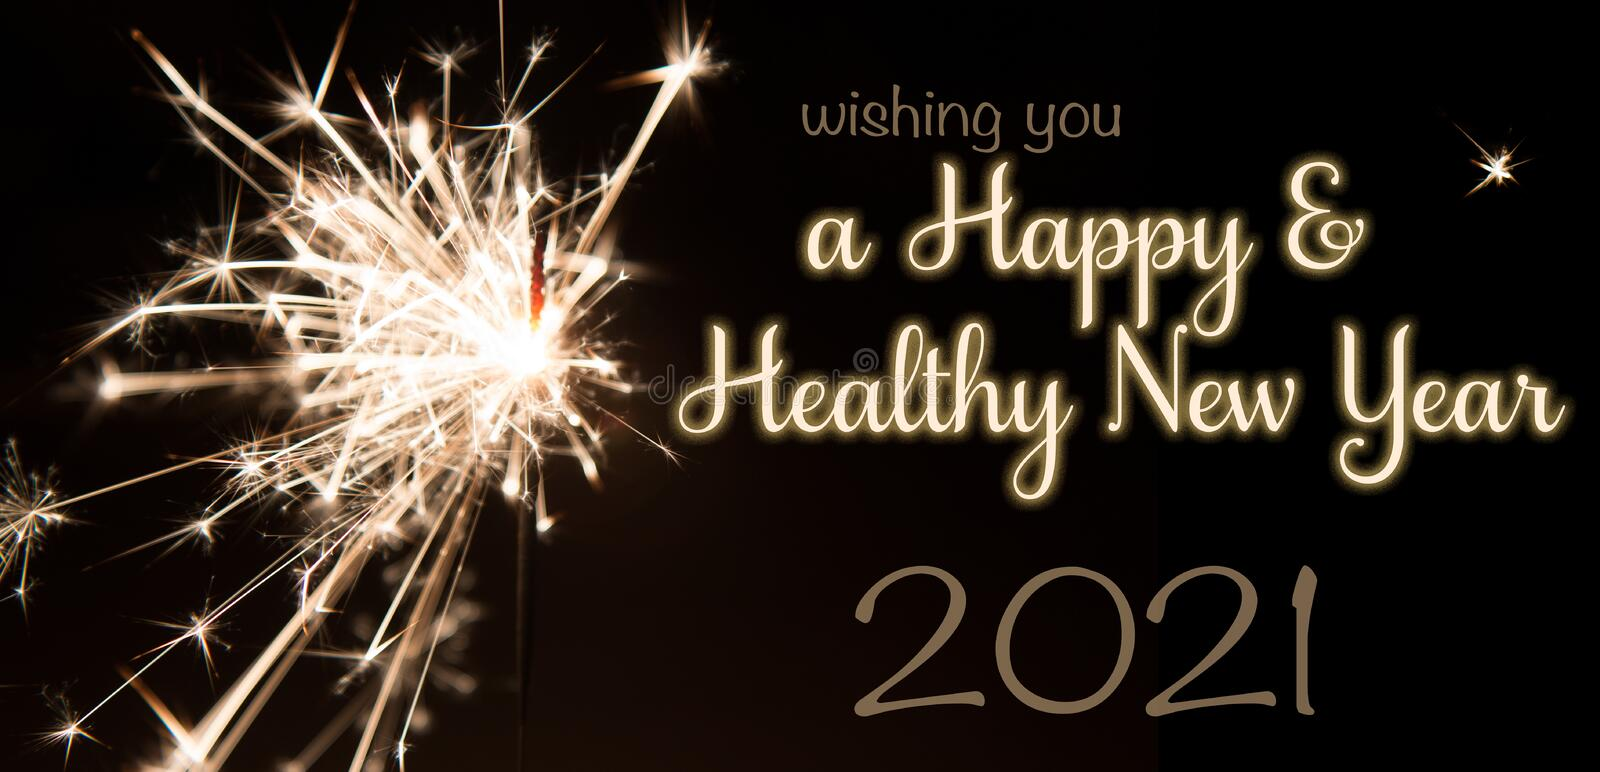 24 491 Happy New Year 2021 Photos Free Royalty Free Stock Photos From Dreamstime Celebrate new year 2021 by wishing your beloved's in a unique and loving style. dreamstime com